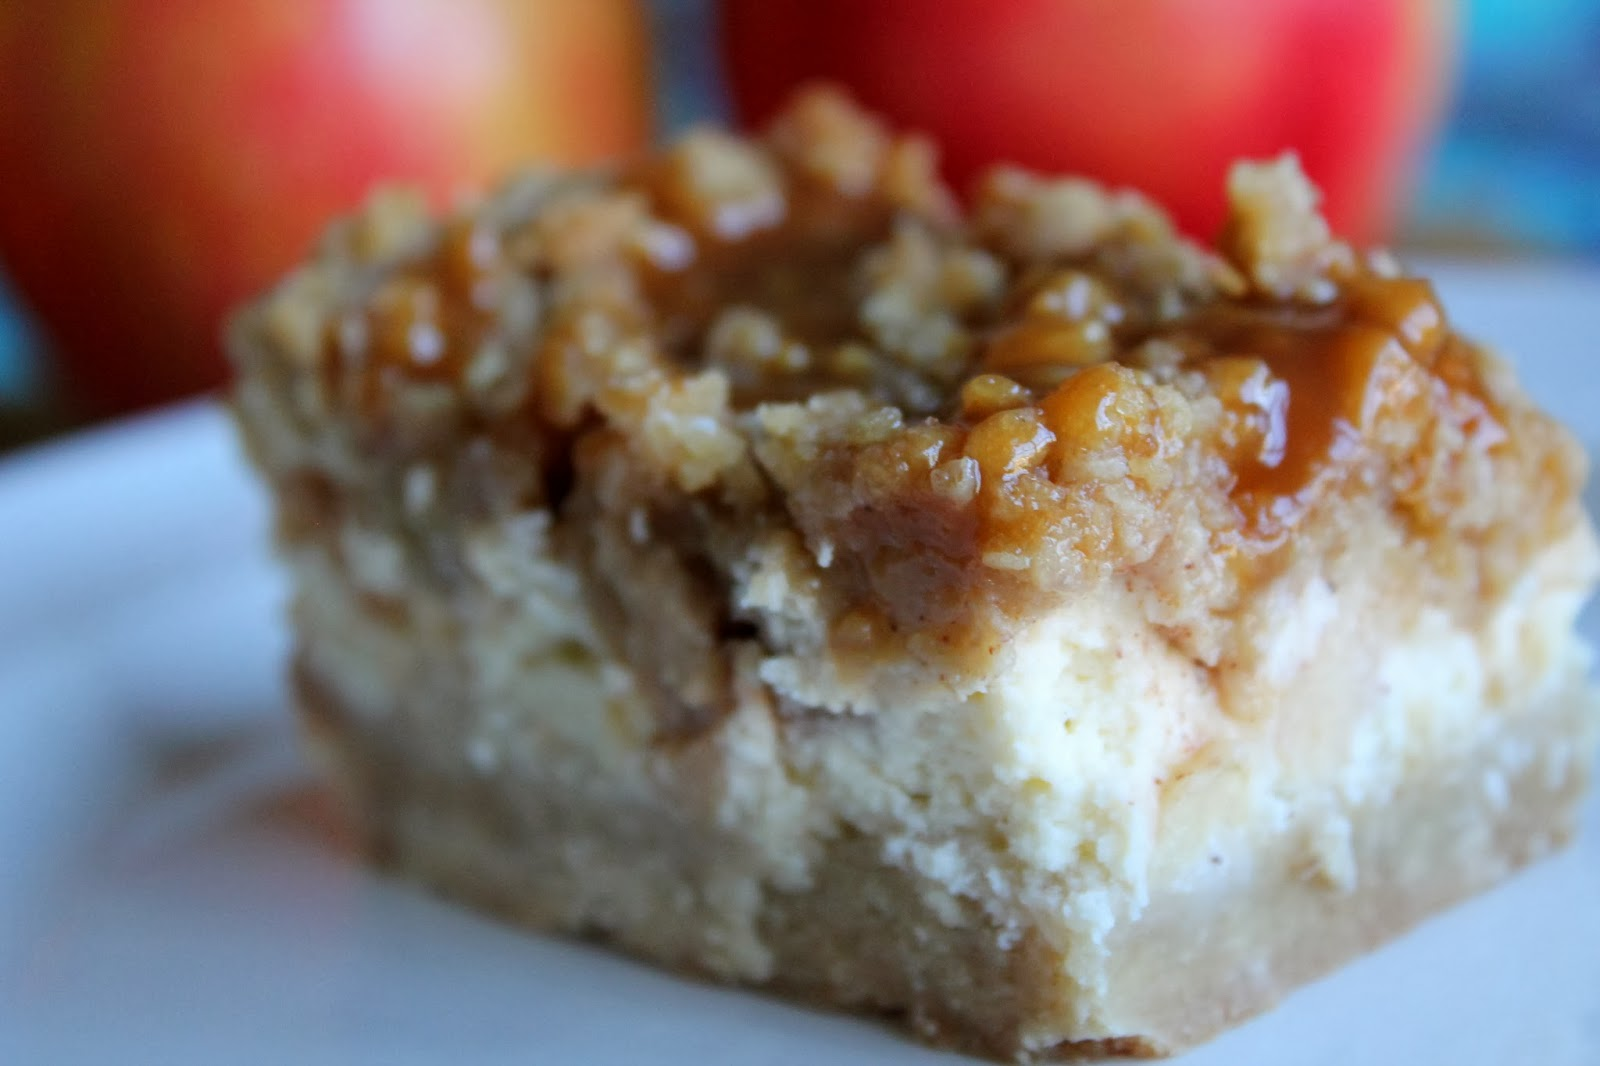 Bakestravaganza: Caramel Apple Cheesecake Bars